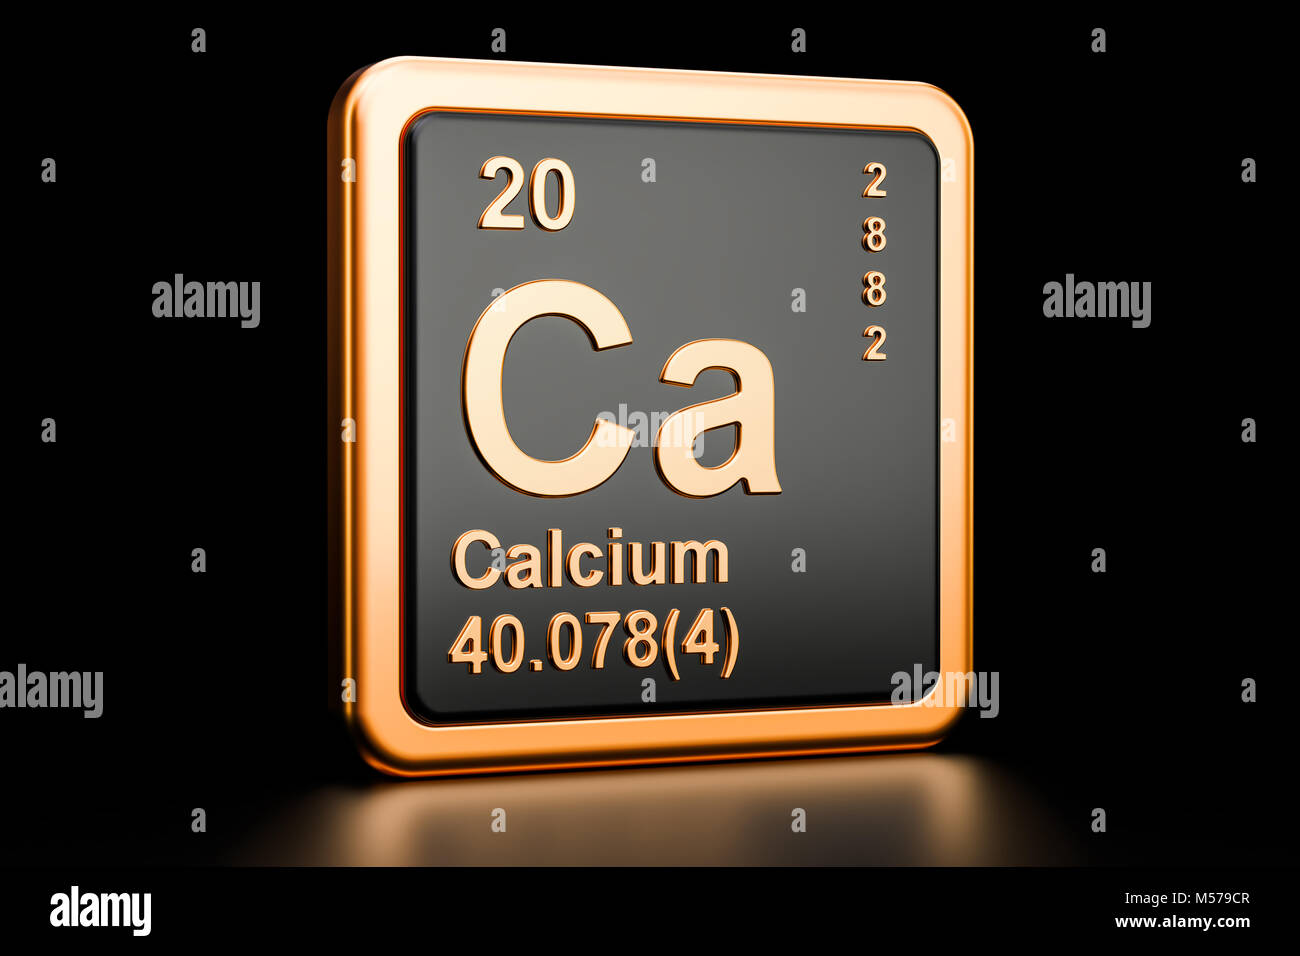 Calcium atomic symbol image collections symbol and sign ideas calcium ca chemical element 3d rendering isolated on black stock calcium ca chemical element 3d rendering buycottarizona